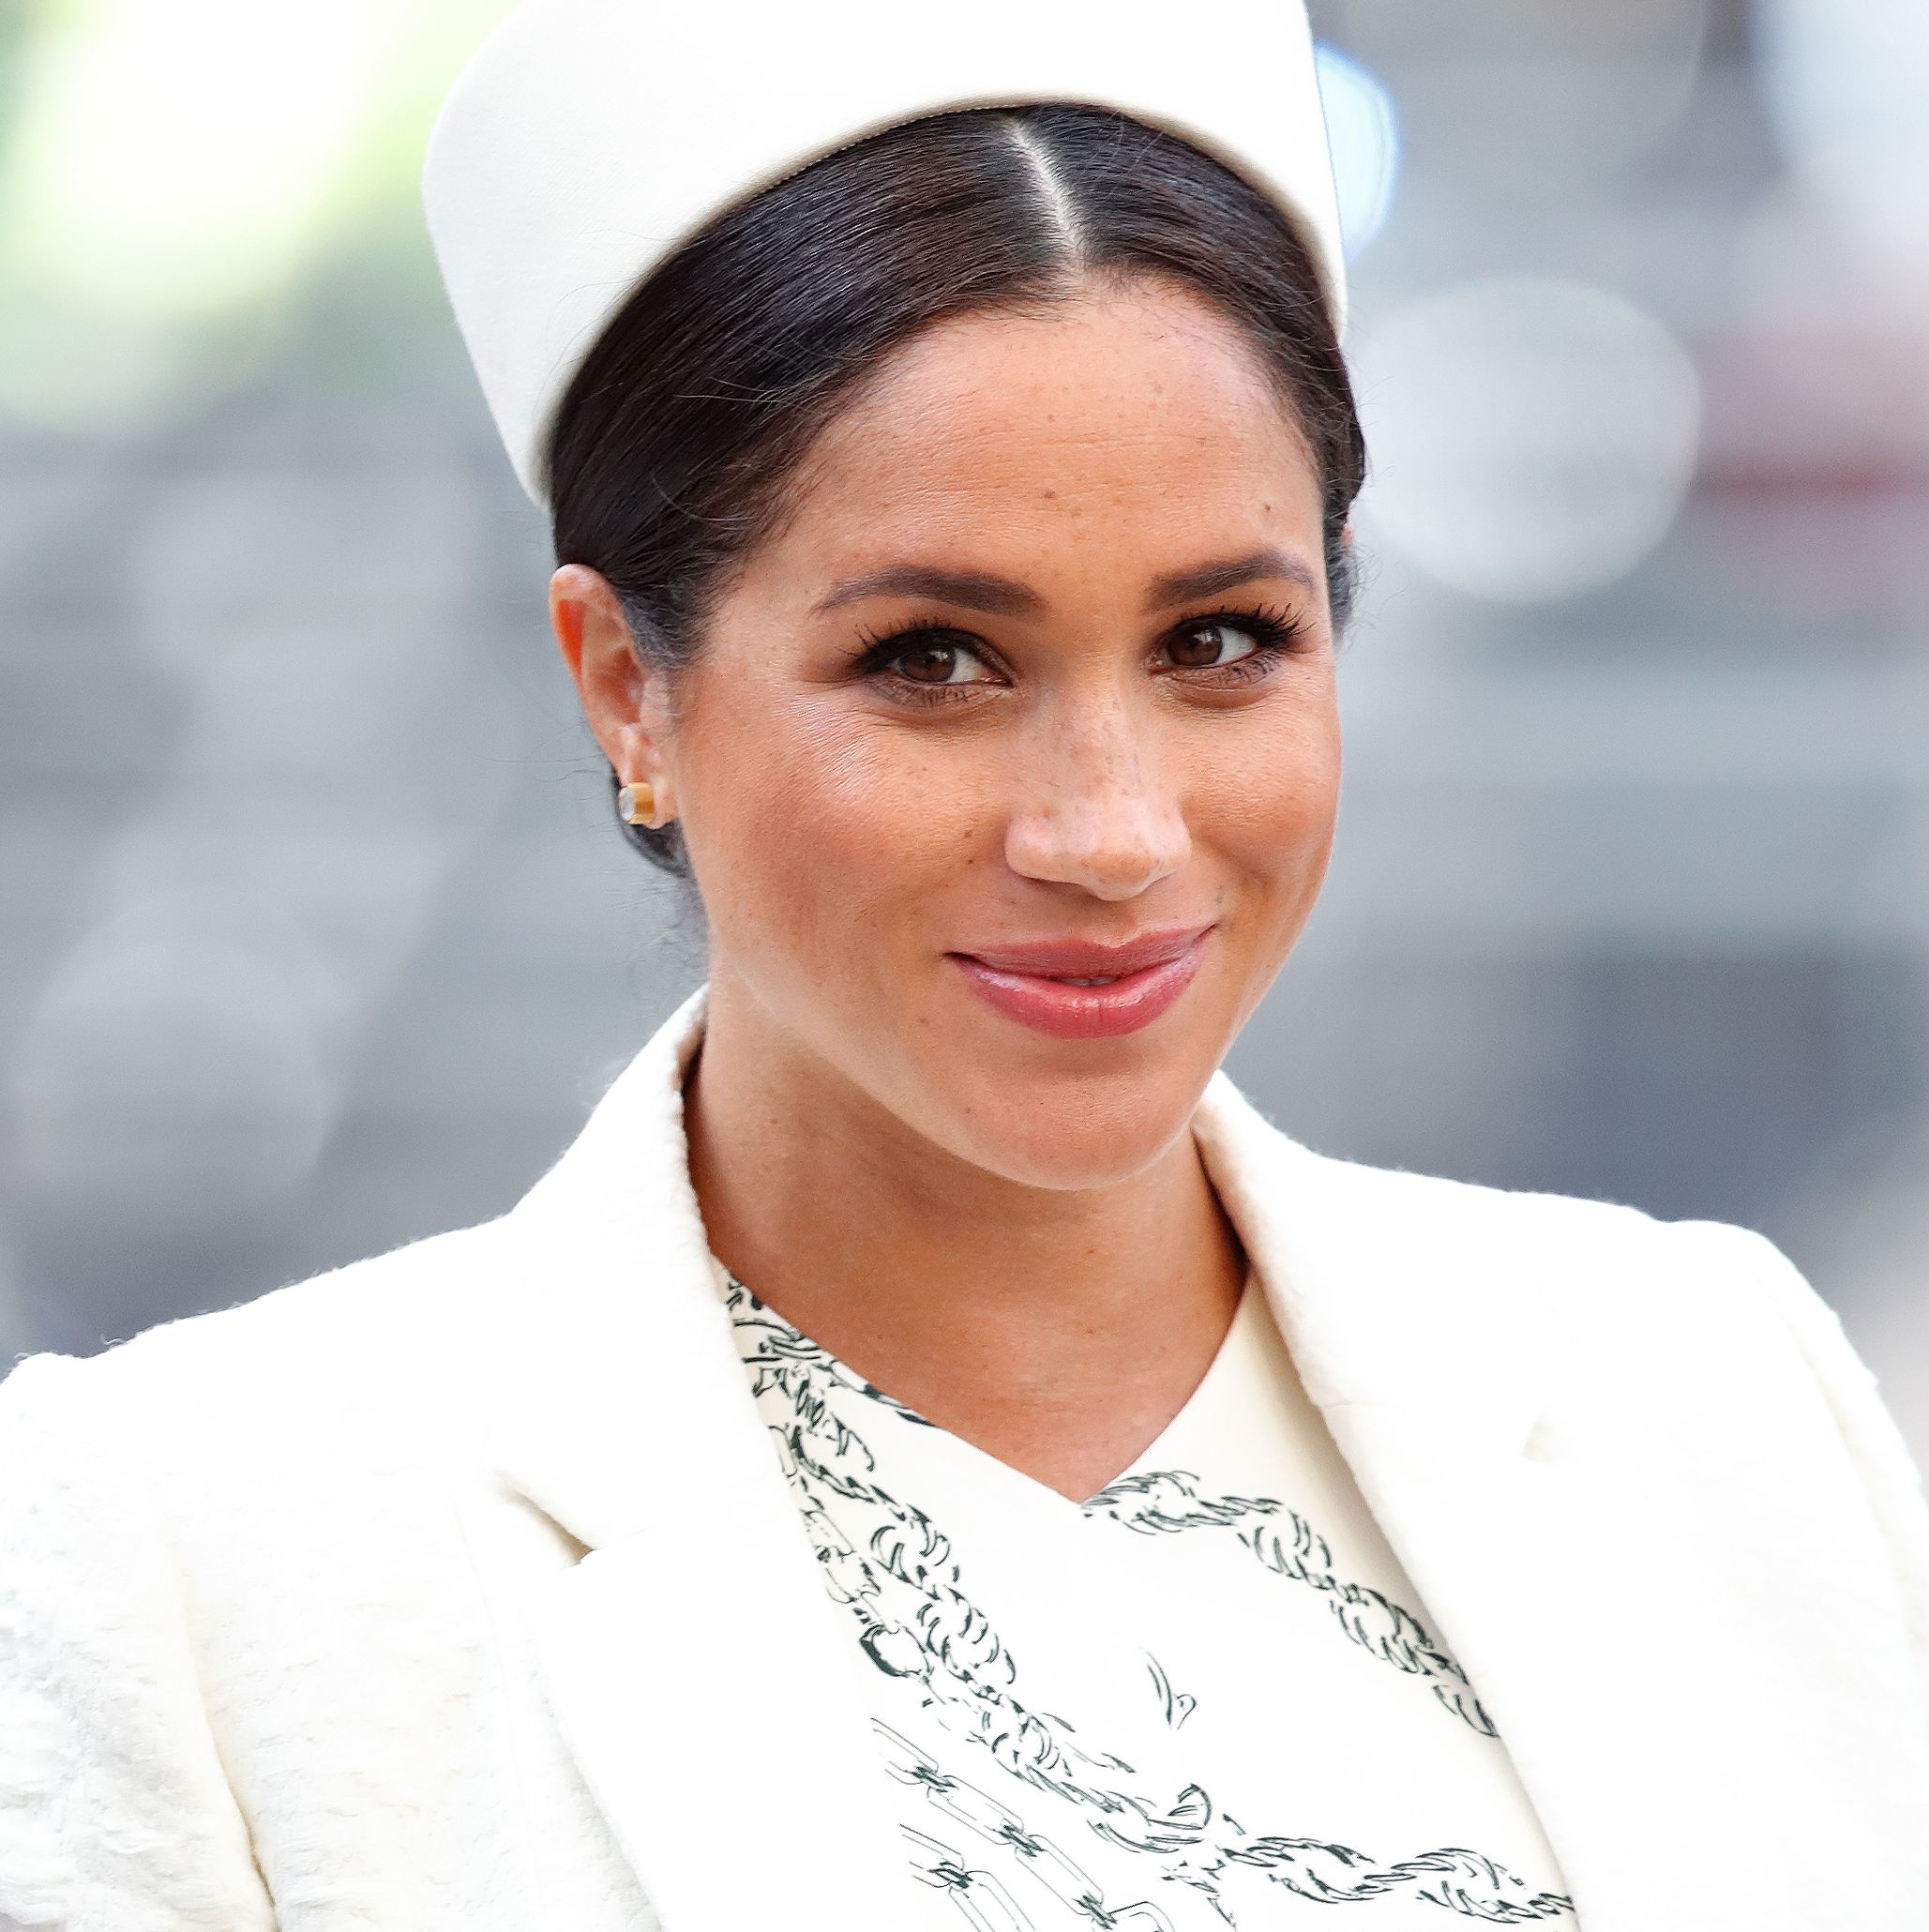 Meghan Markle Is Already Filling Her Calendar With Post-Maternity Leave Events